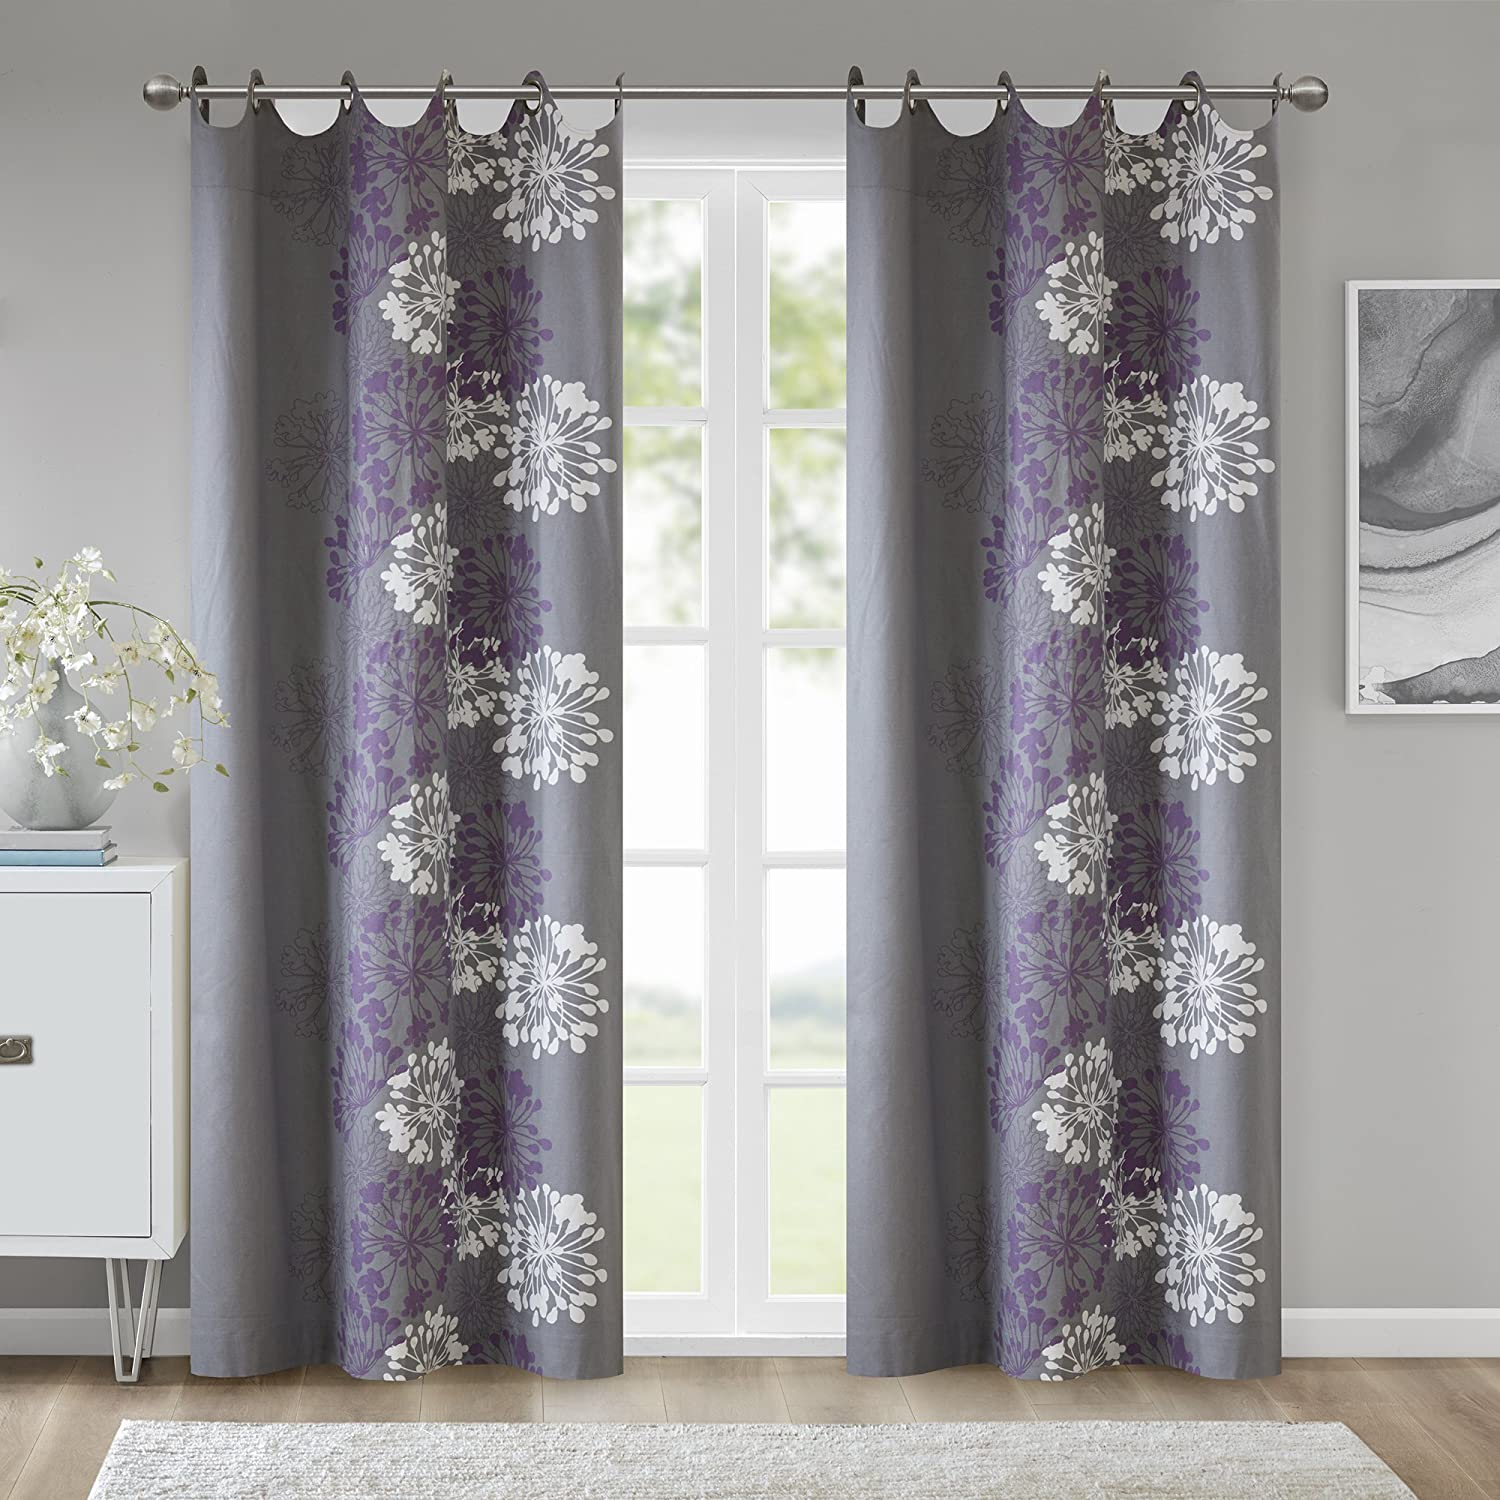 Amazon.com: Grey Purple Curtains for Living Room, Modern ...